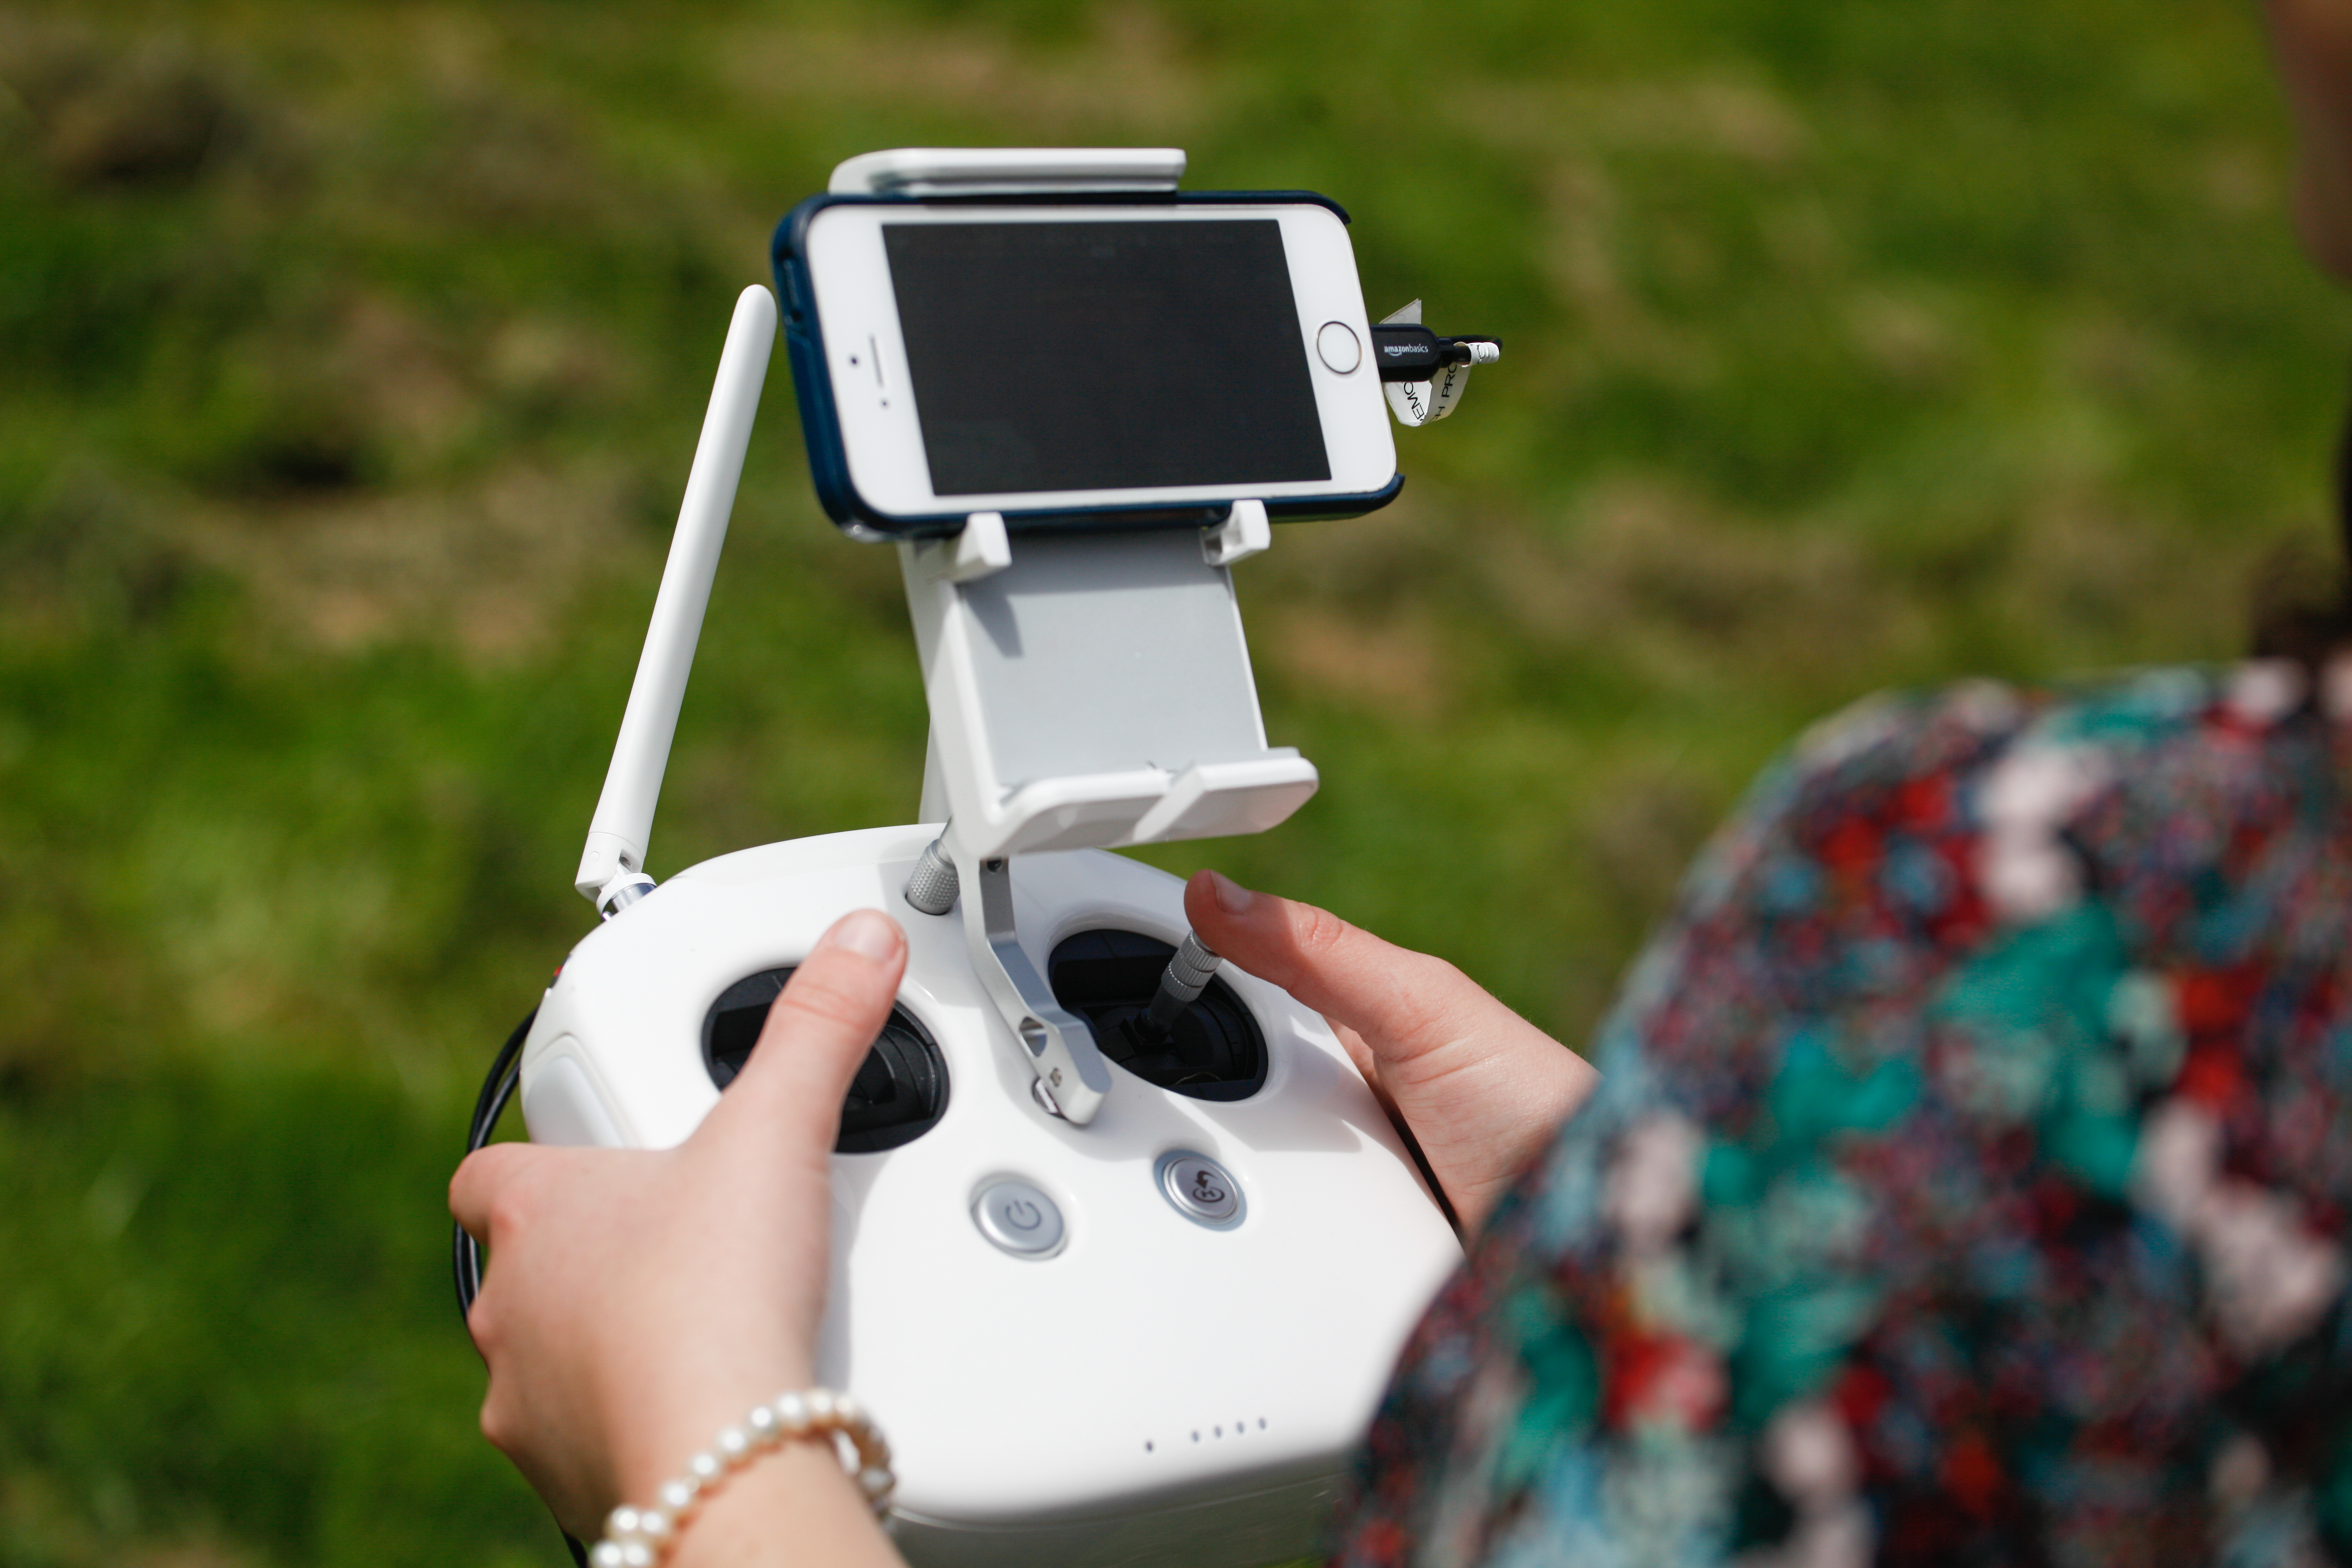 DJI wants you to know that its drones data practices are totally secure